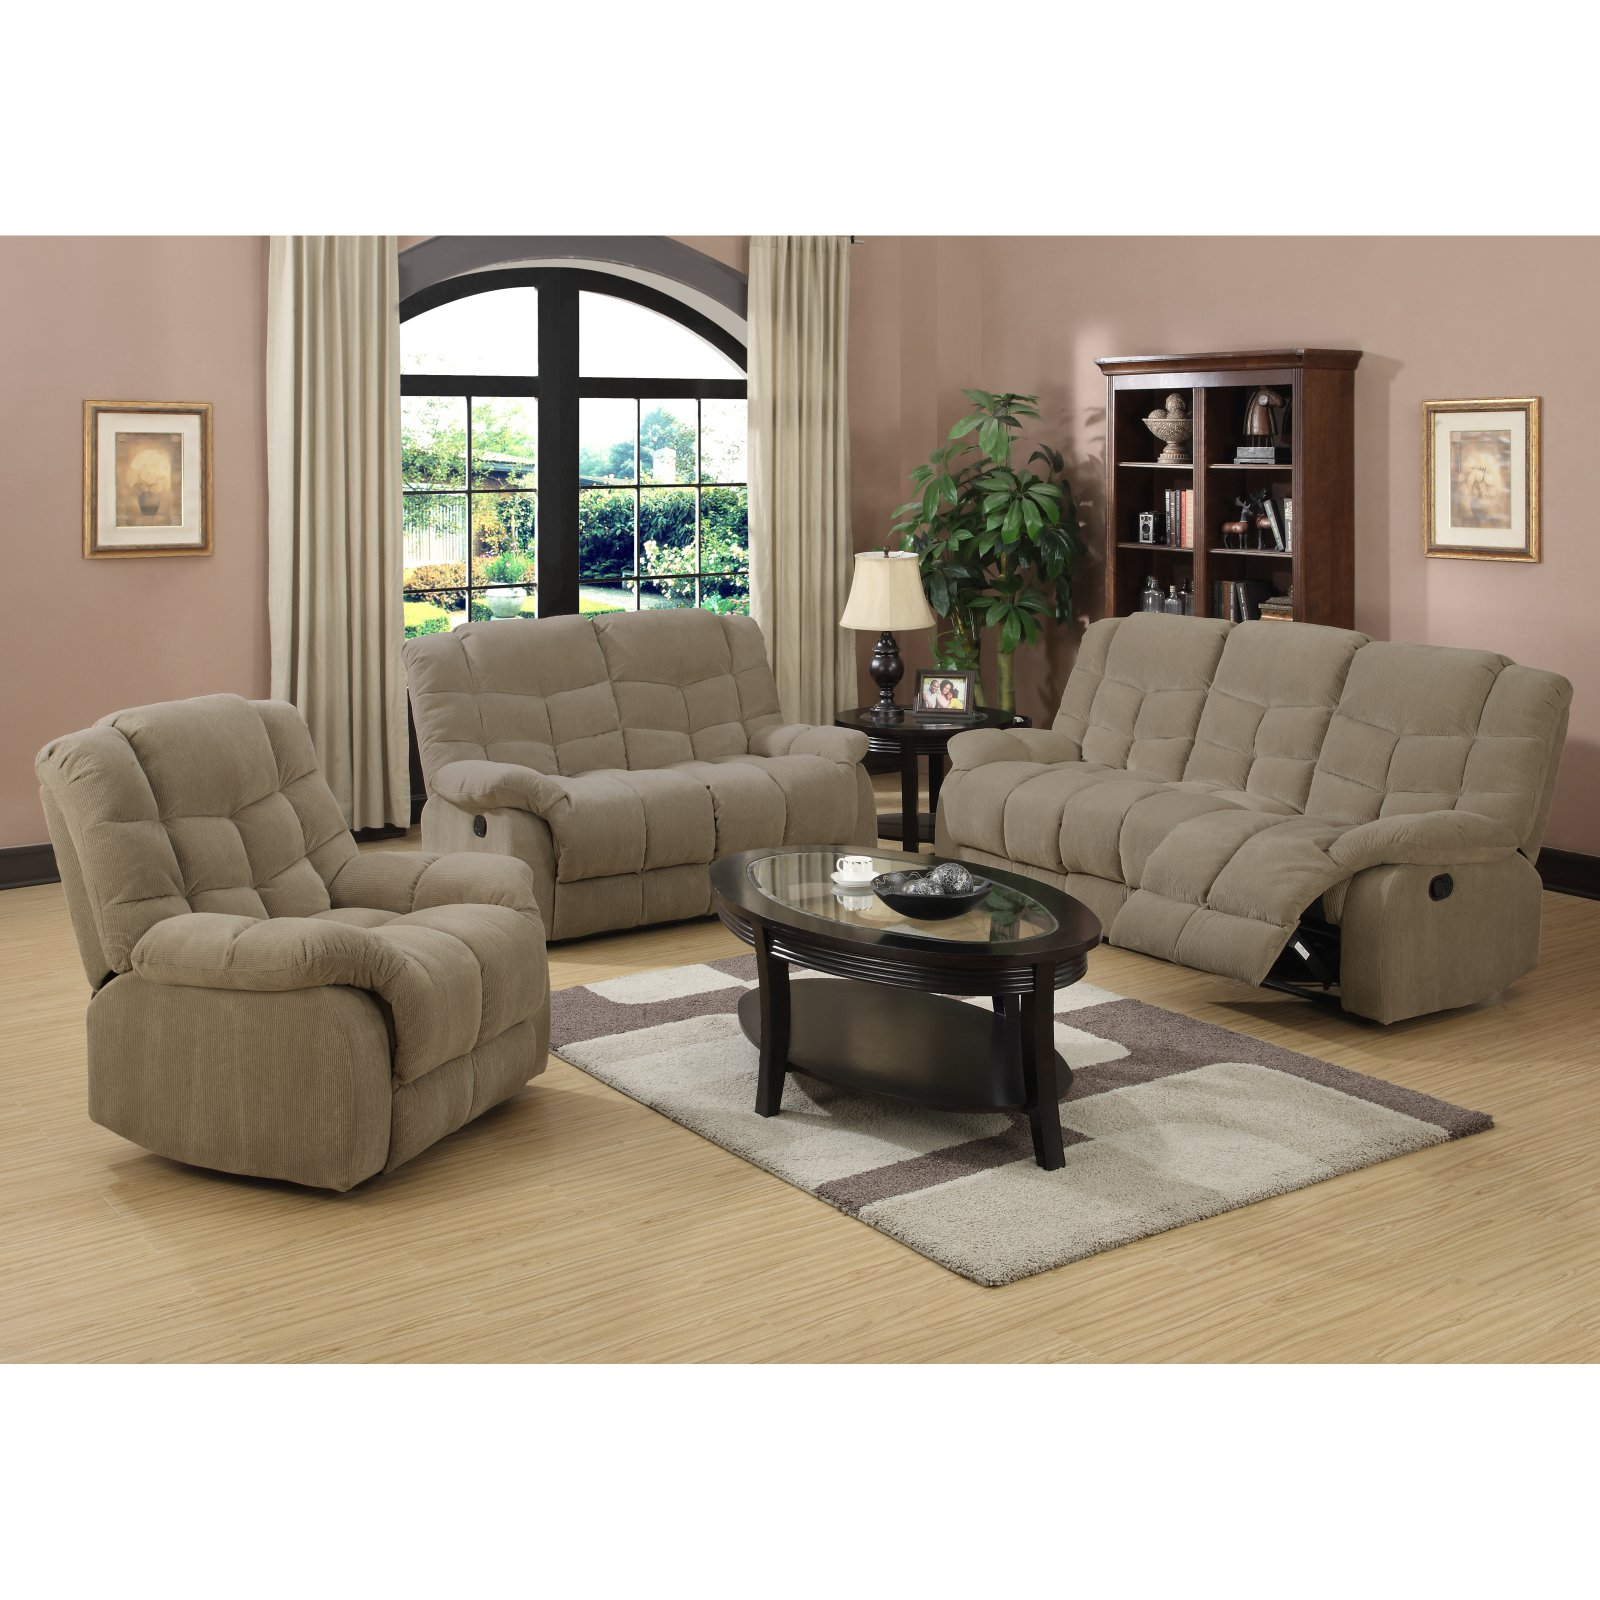 Sunset Trading Heaven On Earth 3 Piece Reclining Living Room Set - Tan